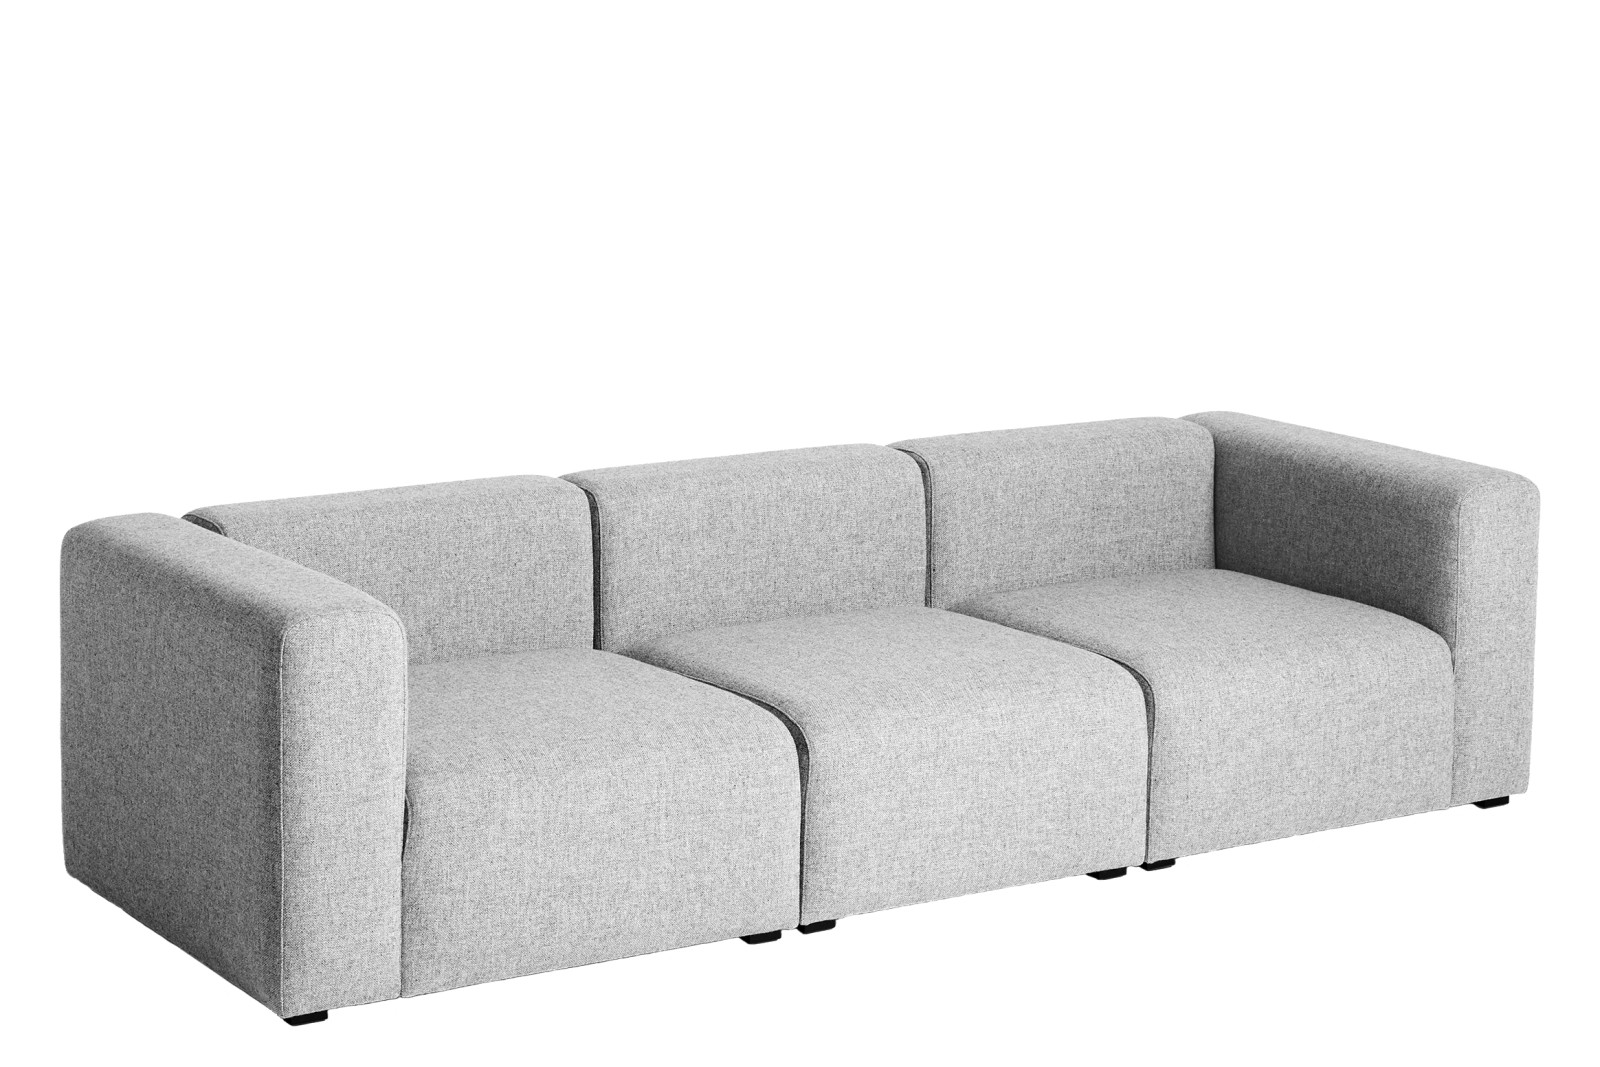 Mags 3 Seater Sofa Remix 2 113